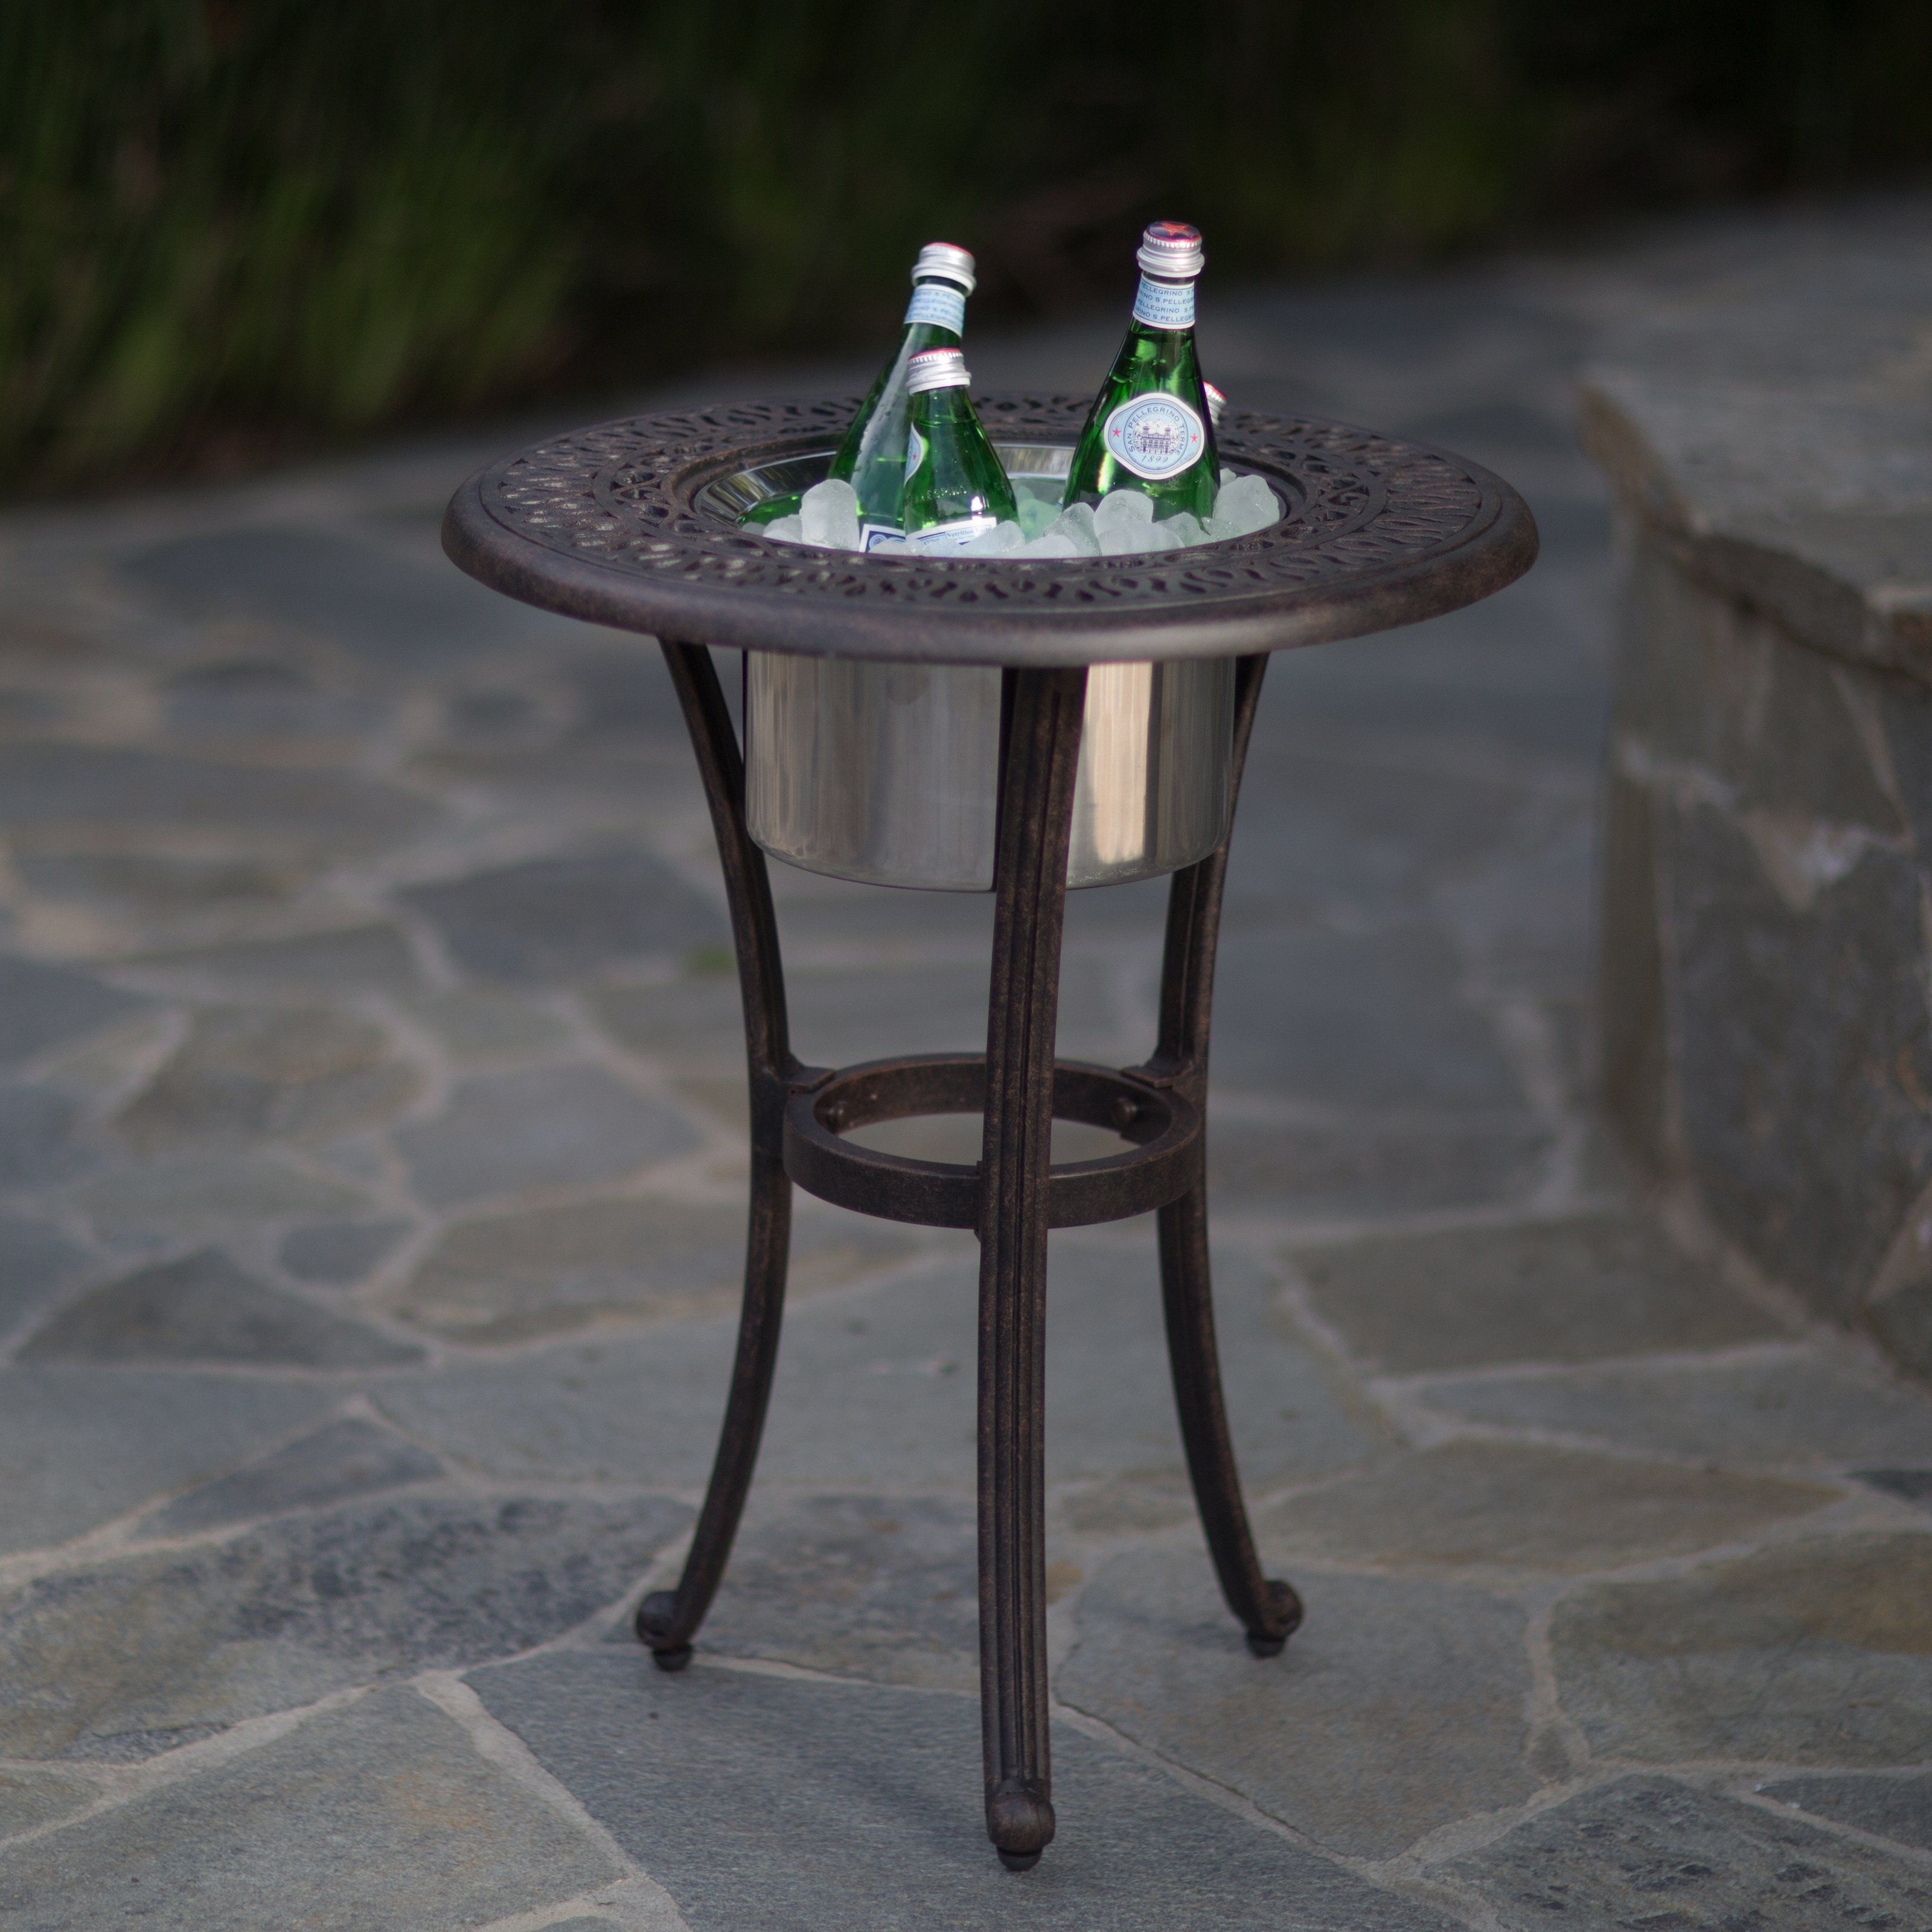 outdoor belham living beverage cooler side table with stainless steel bowl pottery barn square coffee clear chair dining room centerpieces hall console accent pier one area rugs